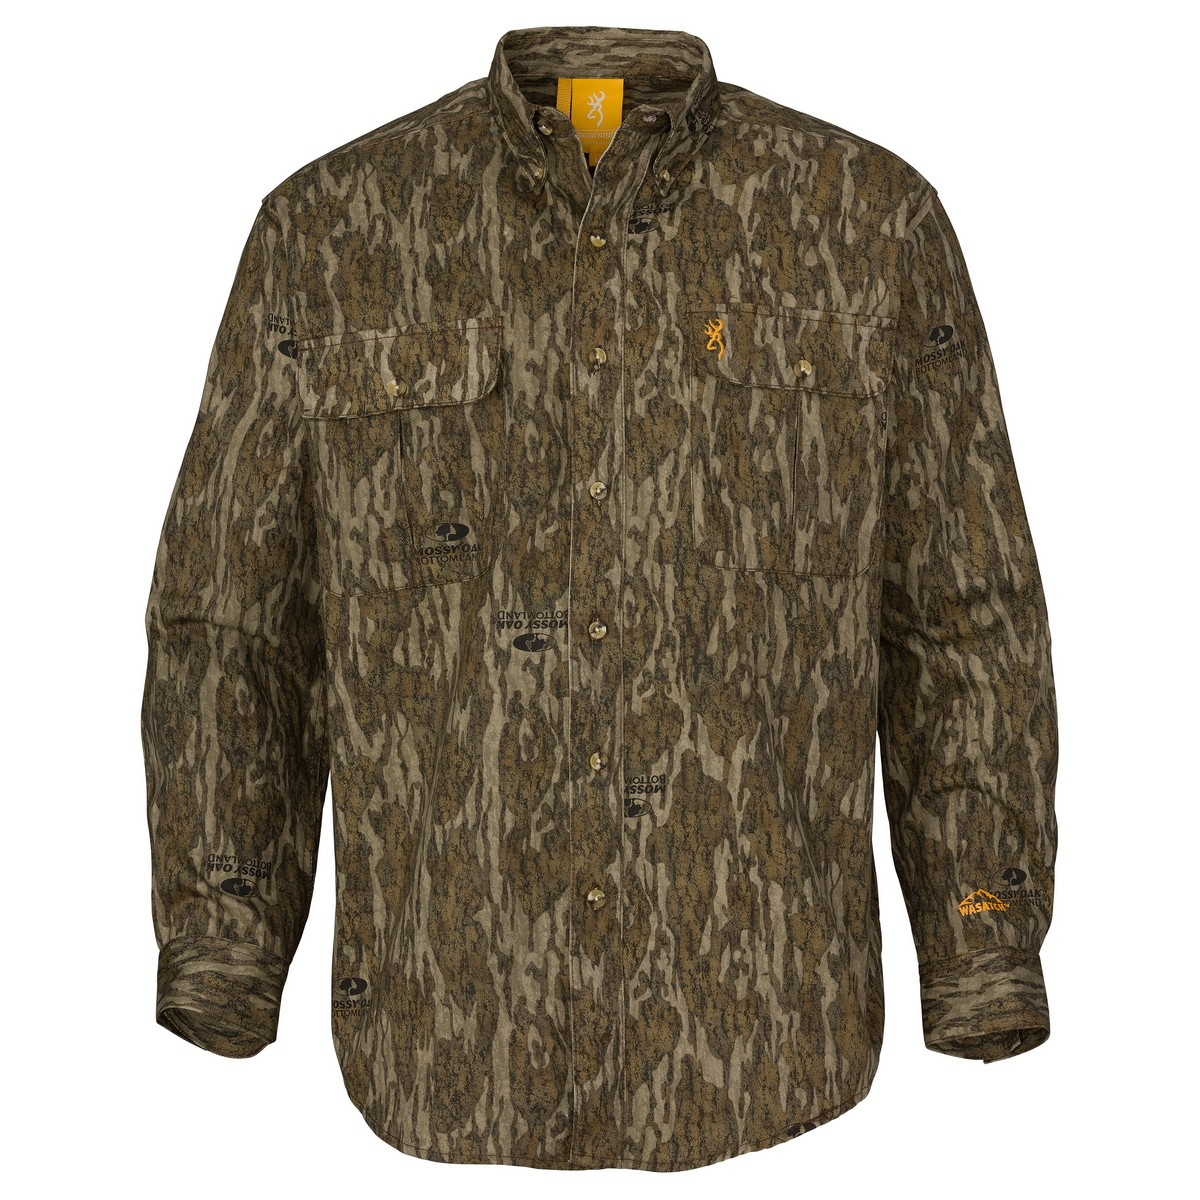 d0ceb85e27cb8 Browning Wasatch-CB Button Up Long Sleeve Hunting Shirt